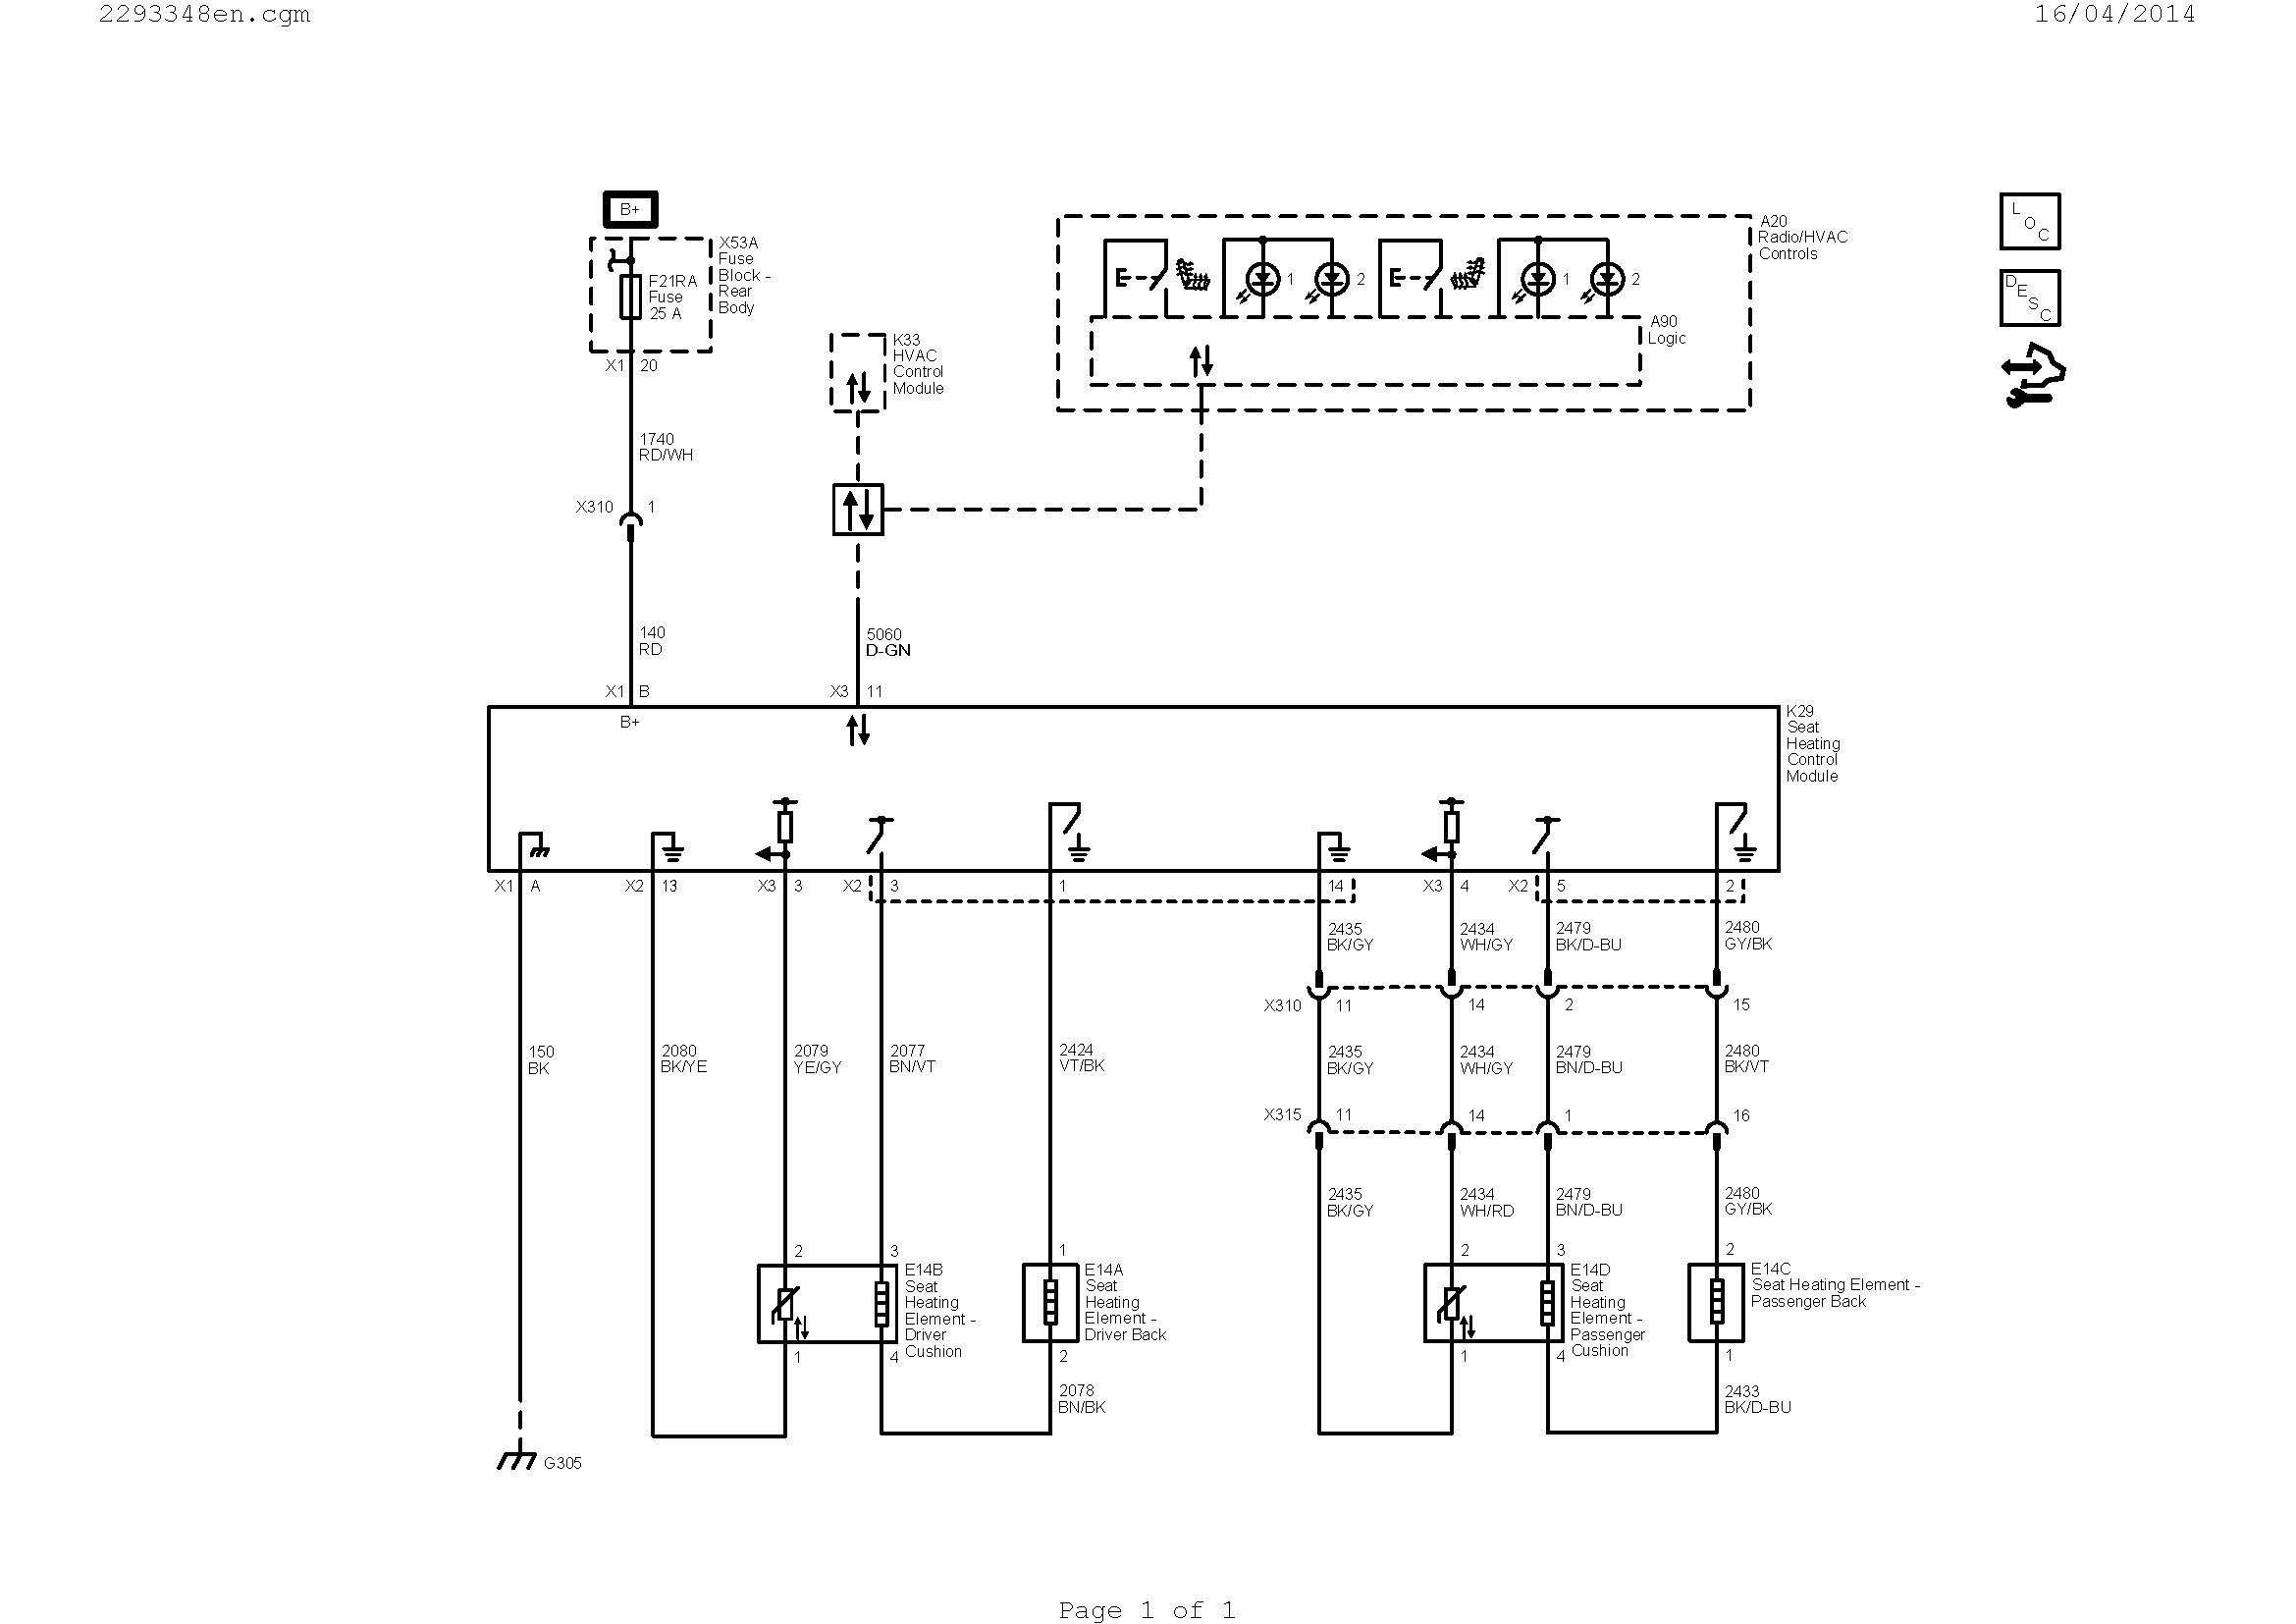 wiring diagram for a nest thermostat download. Black Bedroom Furniture Sets. Home Design Ideas